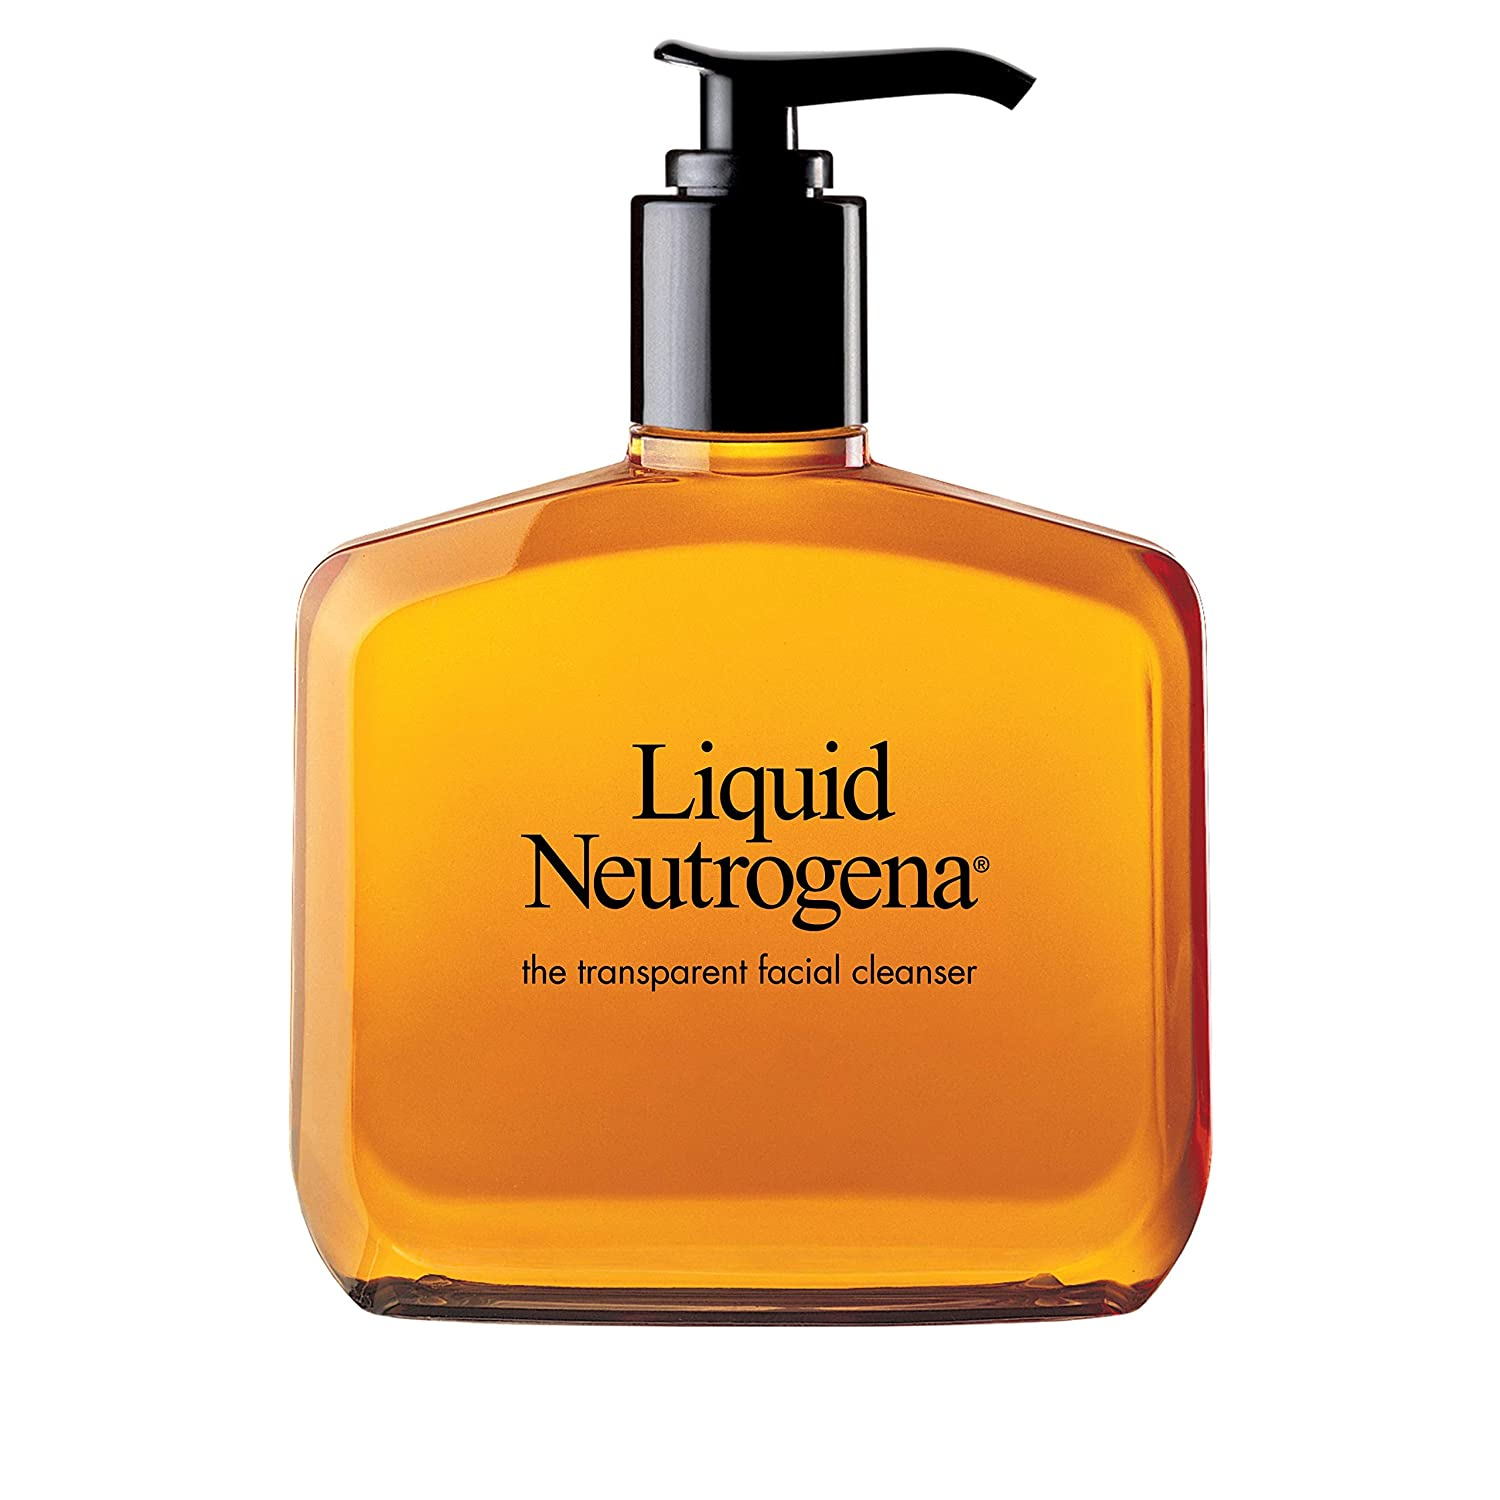 Liquid Neutrogena Fragrance-Free Gentle Facial Cleanser with Glycerin, Hypoallergenic & Oil-Free Mild Face Wash, 8 fl. oz : Facial Cleansing Products : Beauty